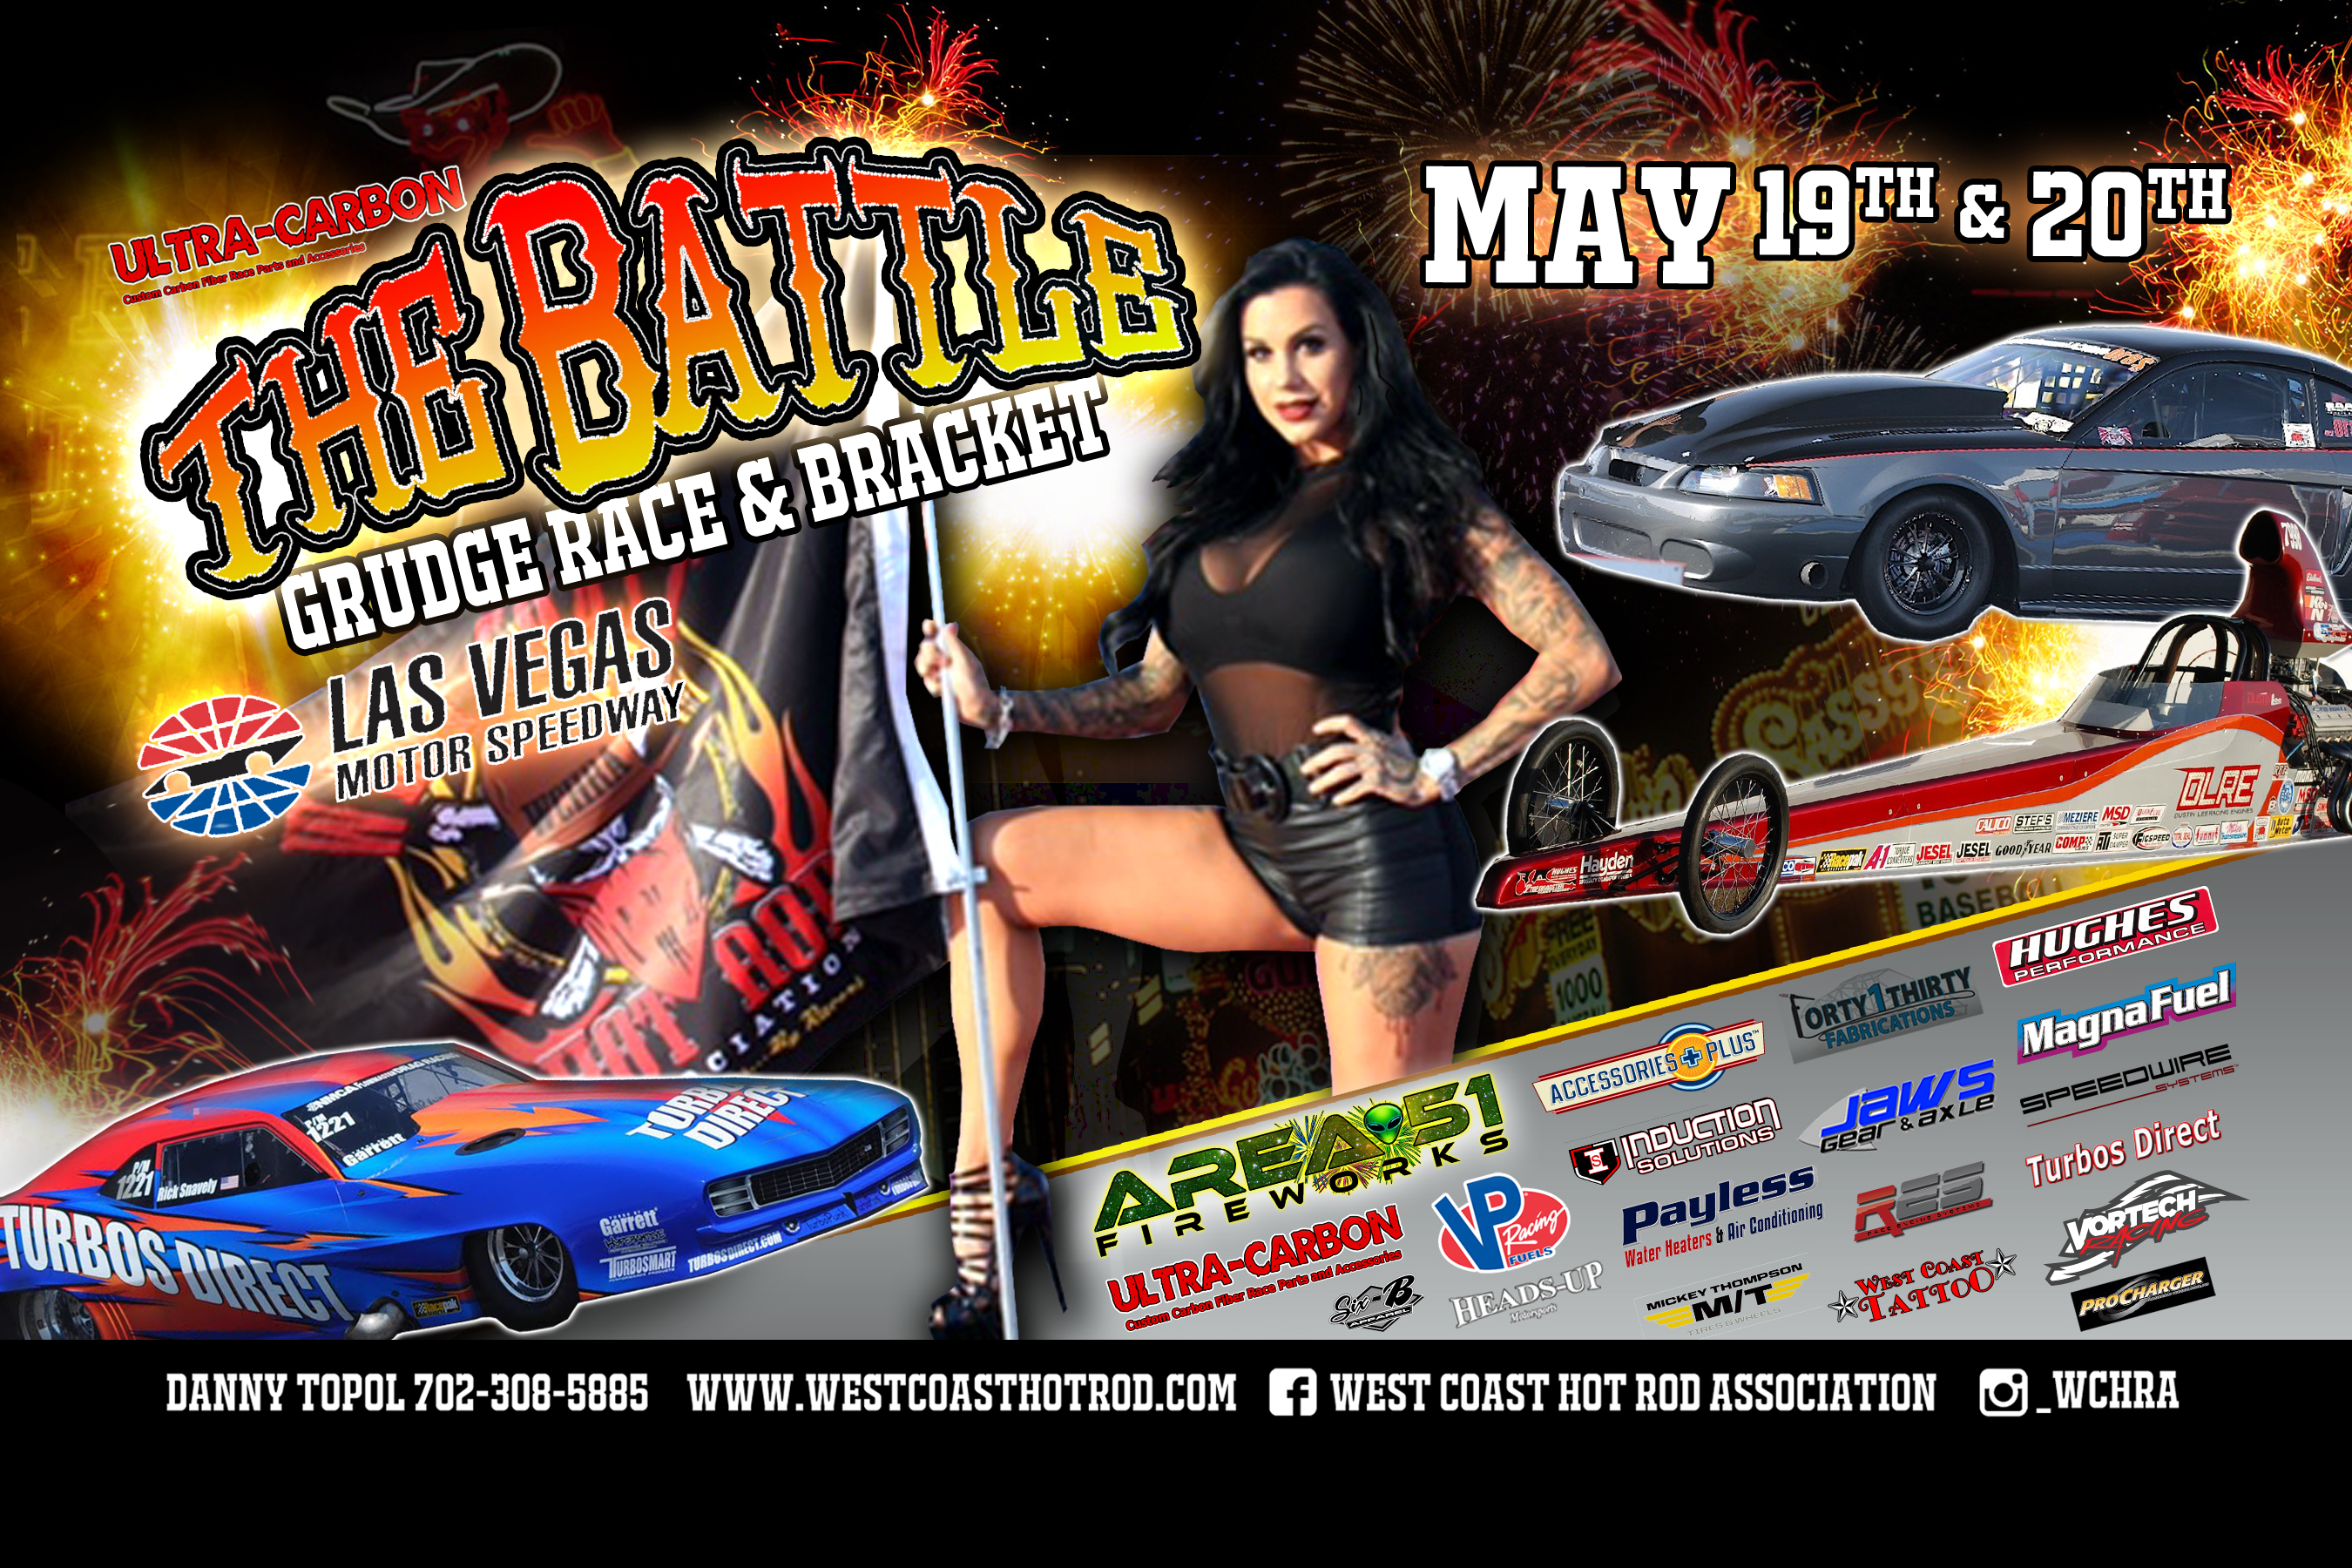 LIVE Grudge Racing From The Battle At Las Vegas Starts Saturday Afternoon